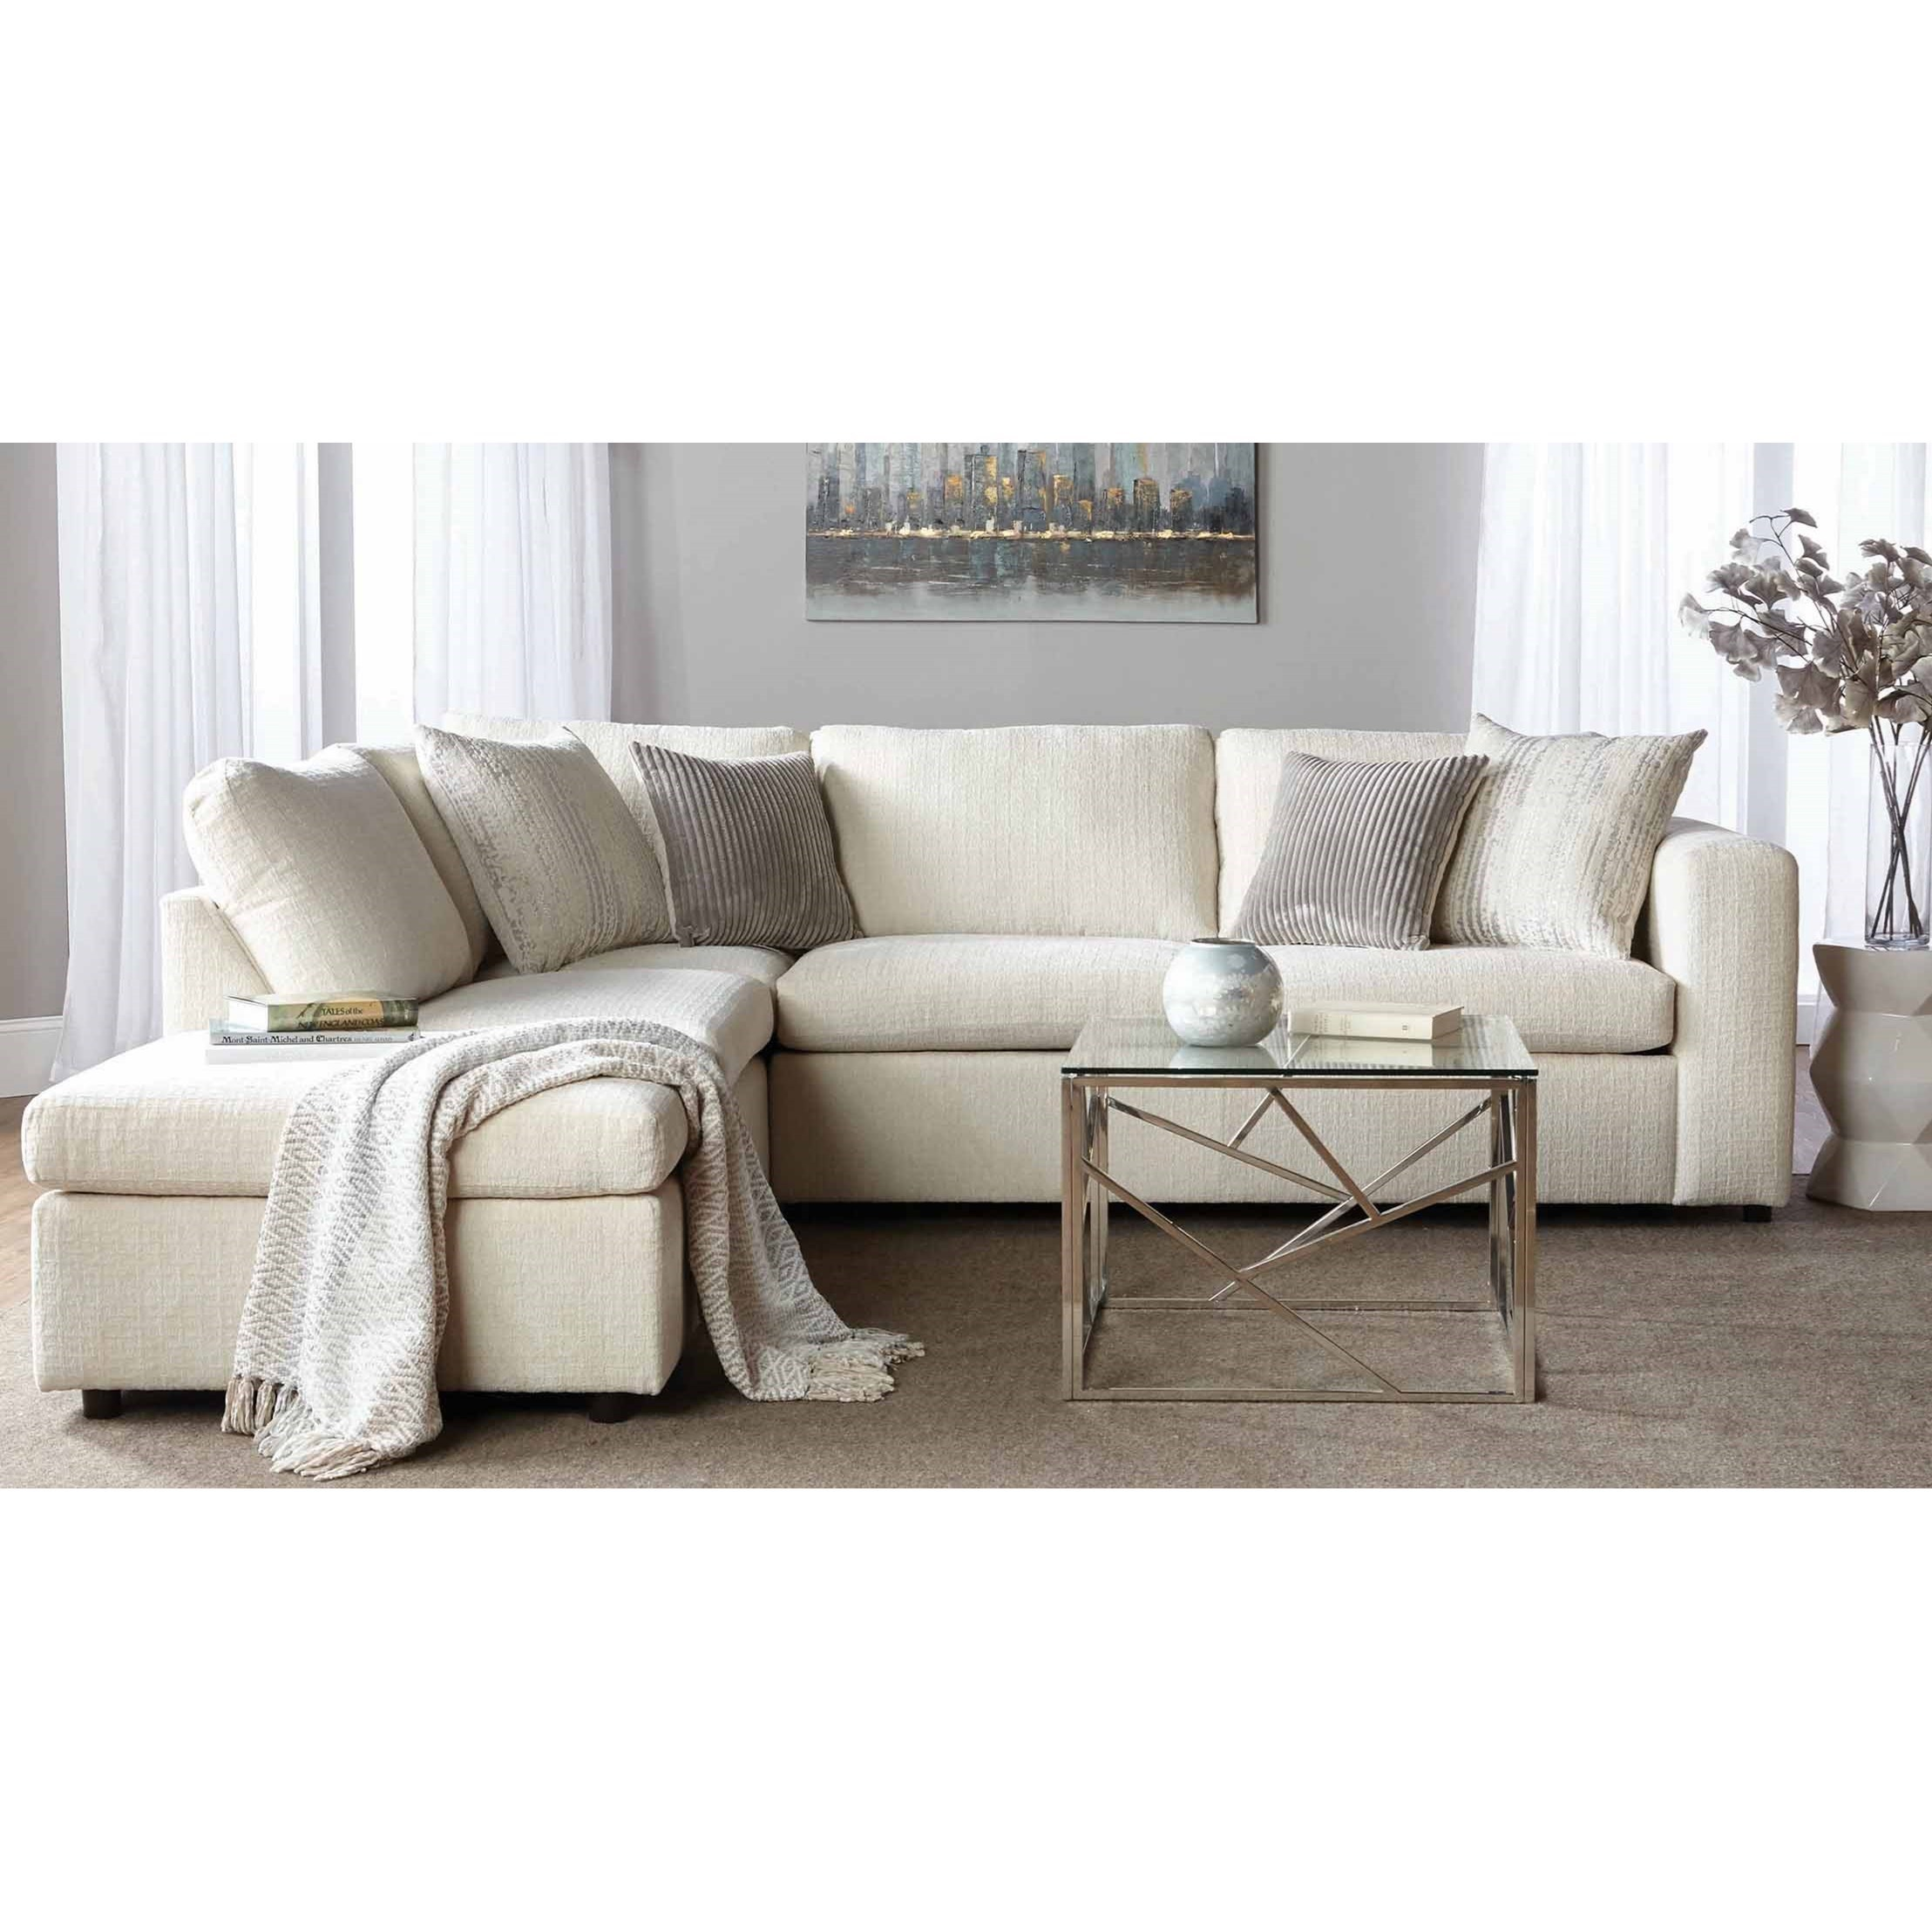 Superieur Serta Upholstery By Hughes Furniture 1100Sectional Sofa With Chaise